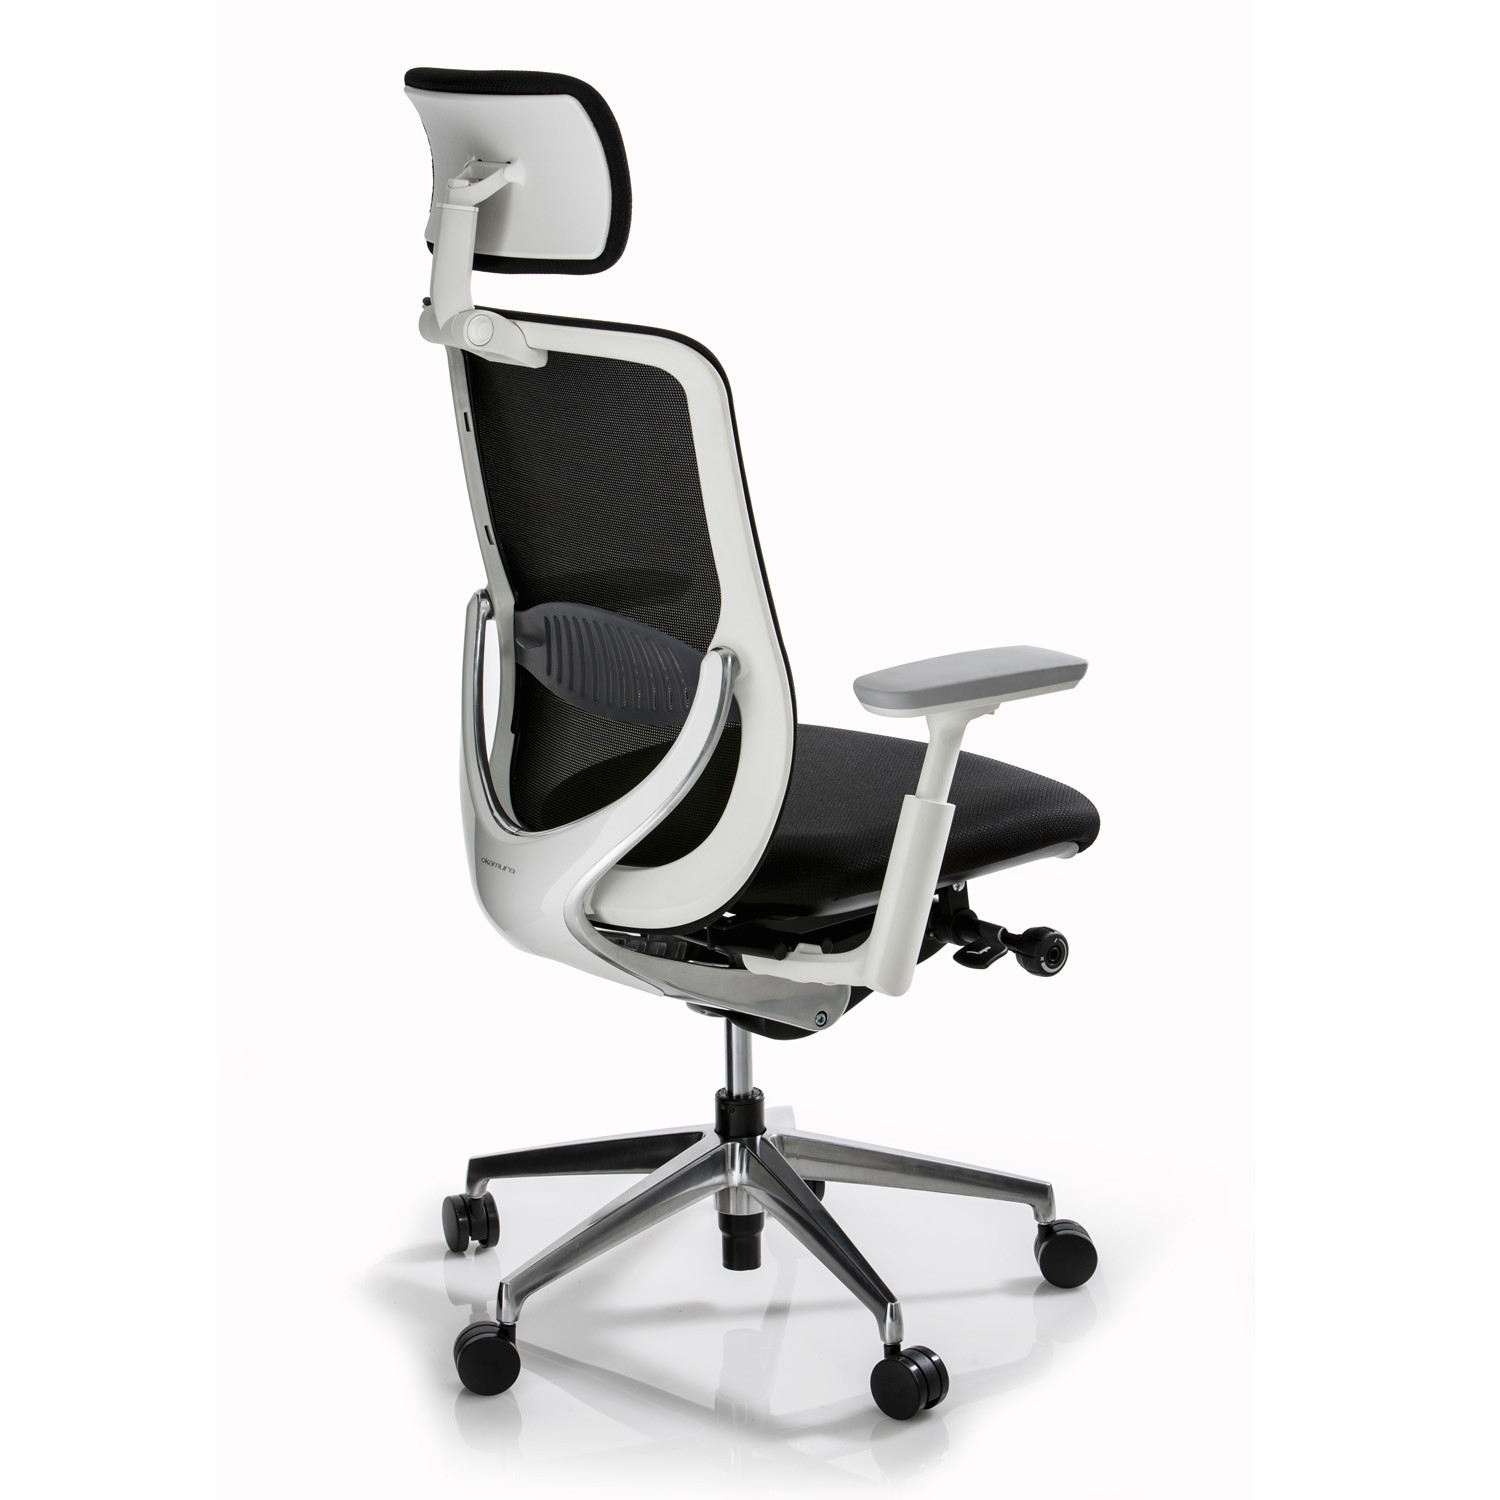 Zephyr Light Office Chair with Headrest